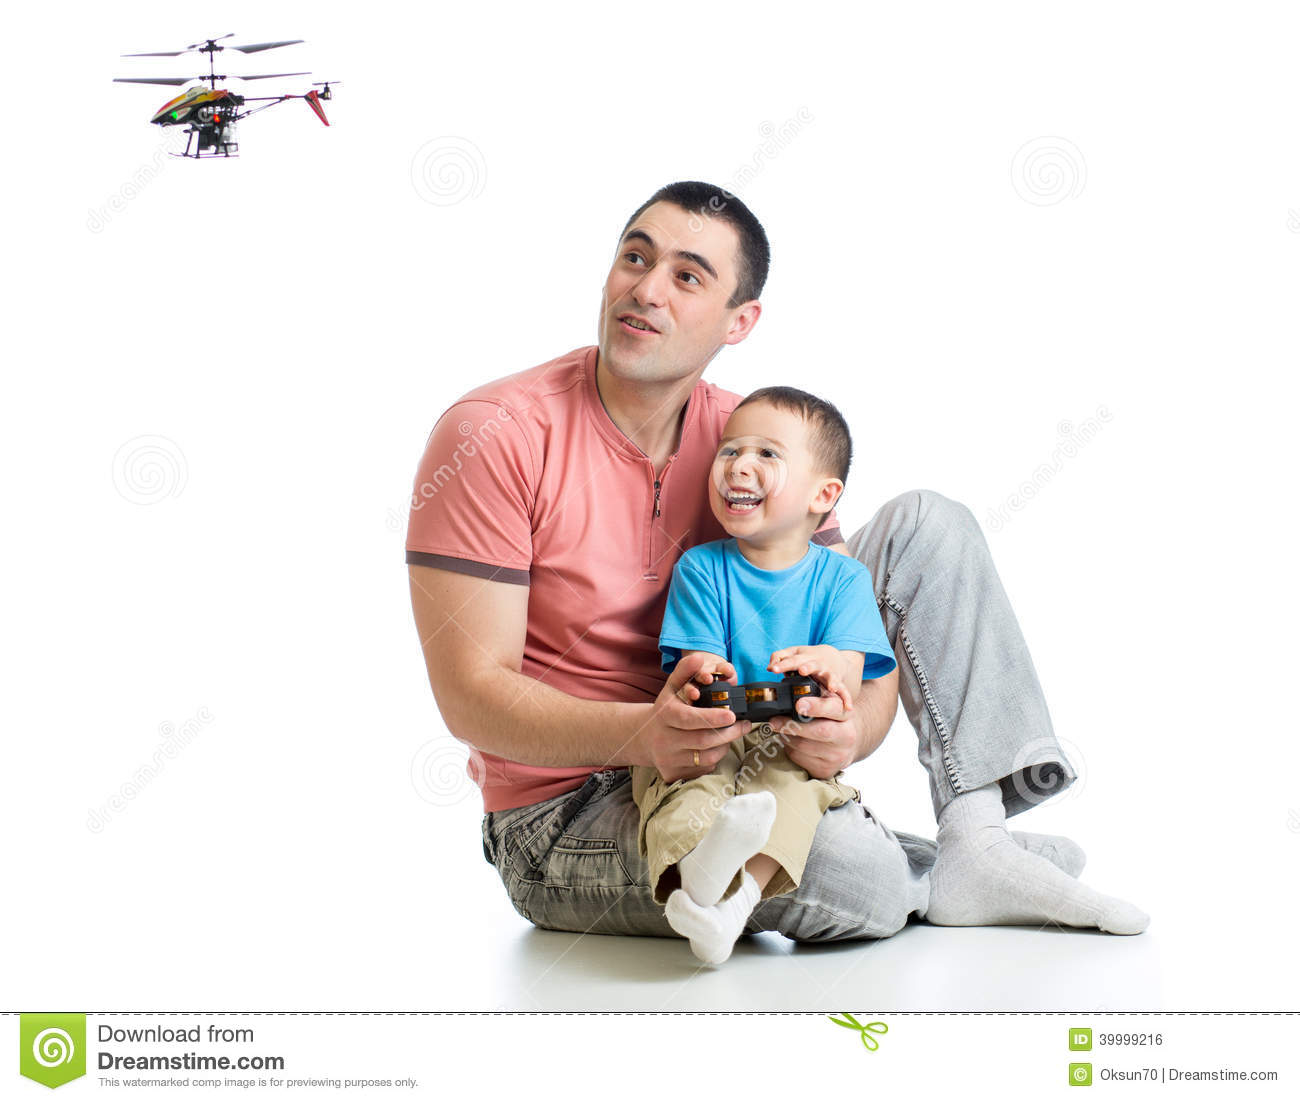 Toys For Dads : Father and kid playing with rc helicopter toy stock photo